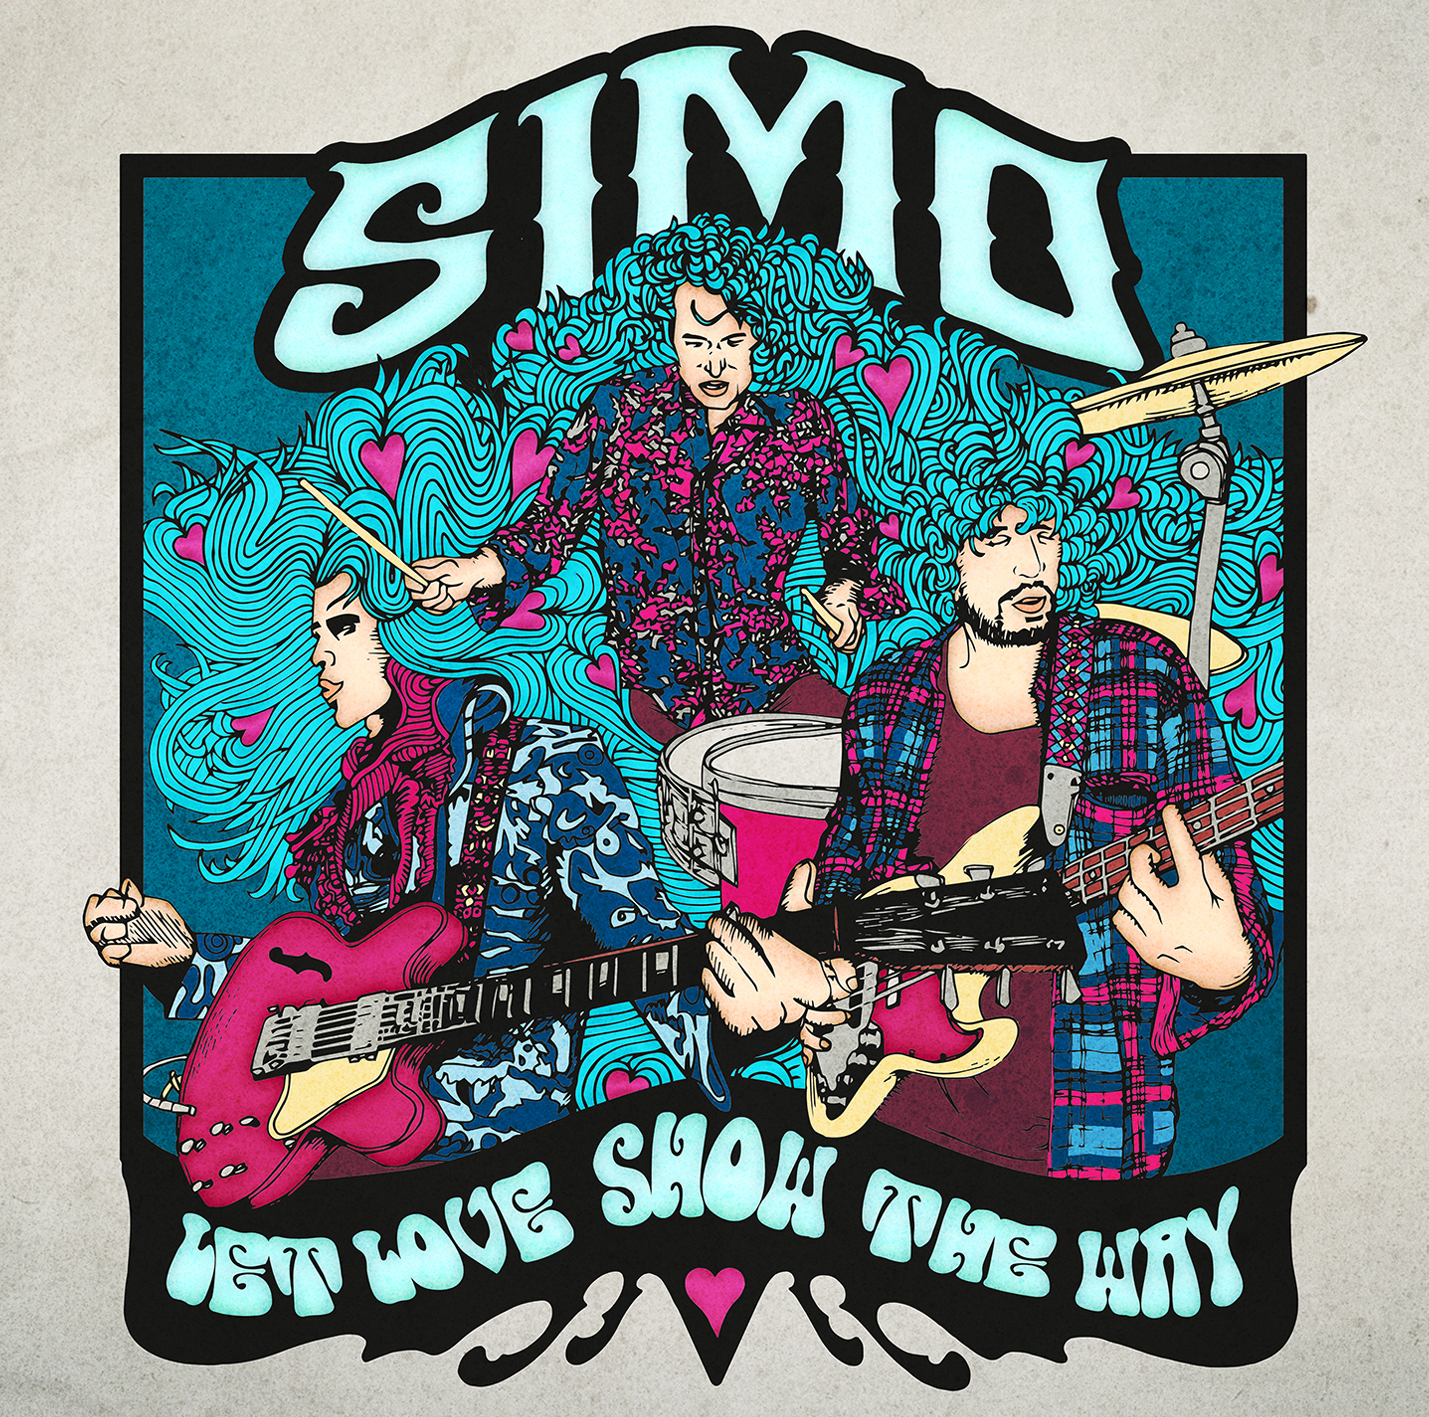 Simo – Let Love Show The Way – CD Review